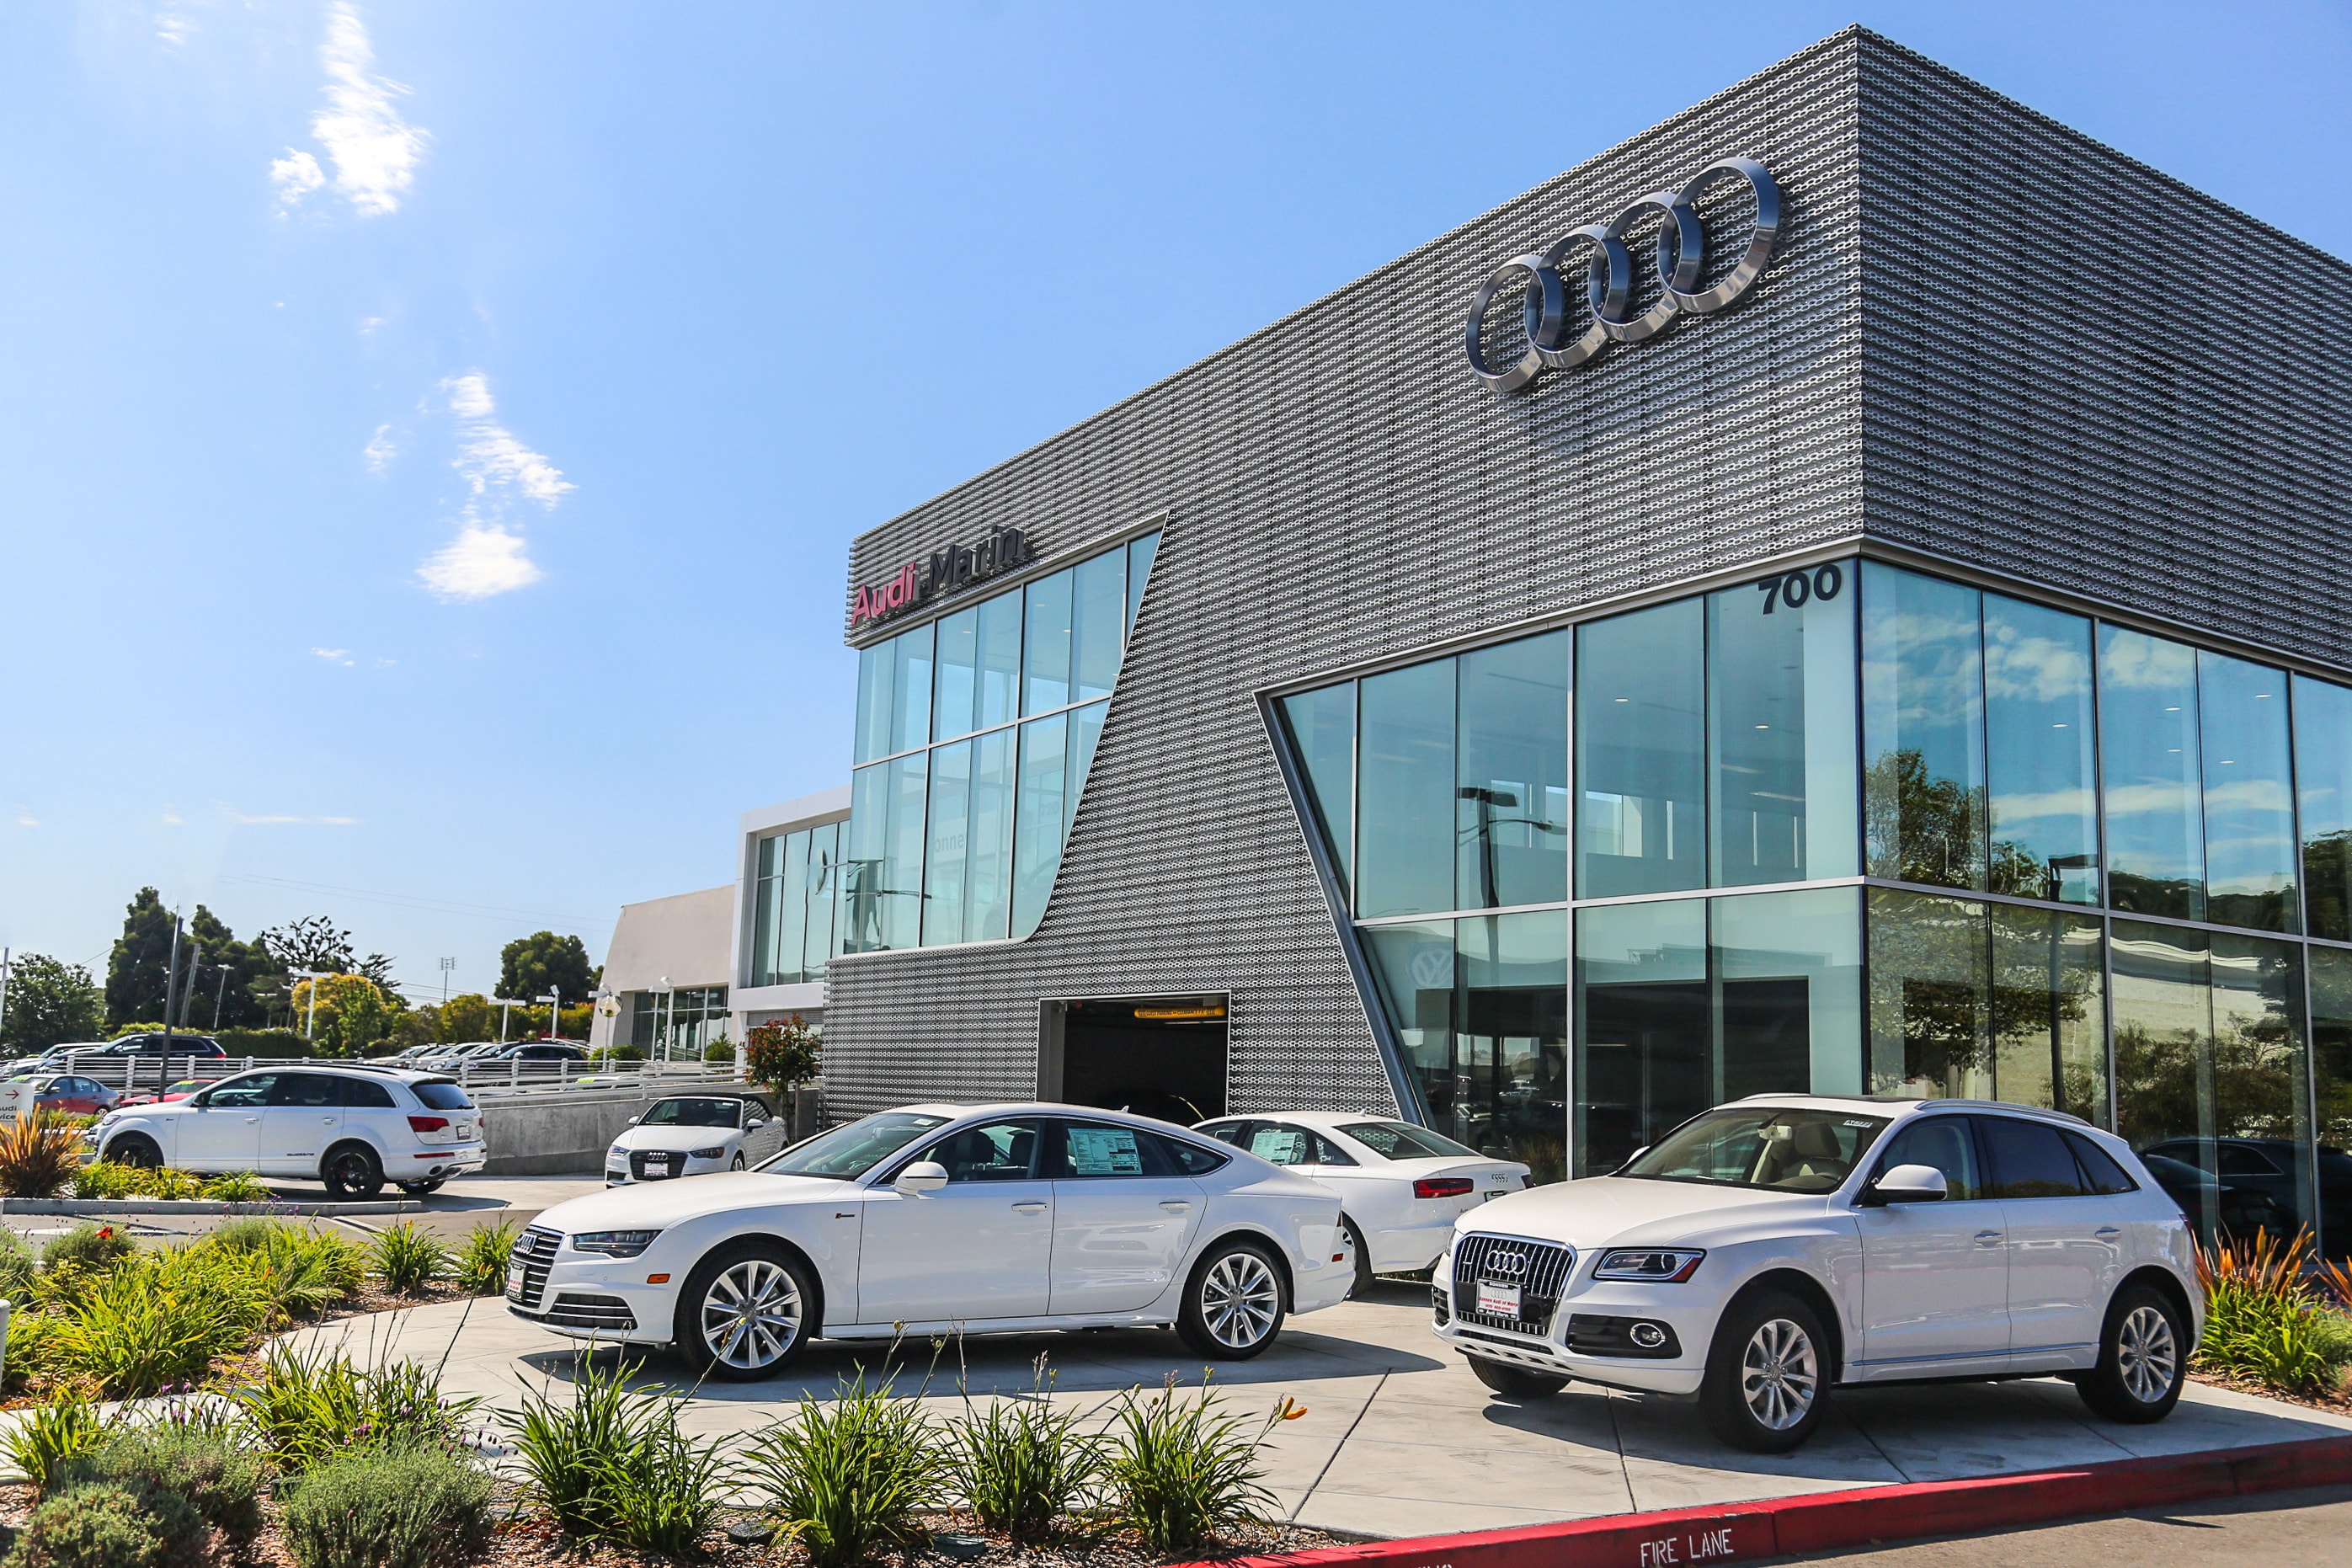 Contact Audi Marin In San Rafael With Any New Audi Or Used Car